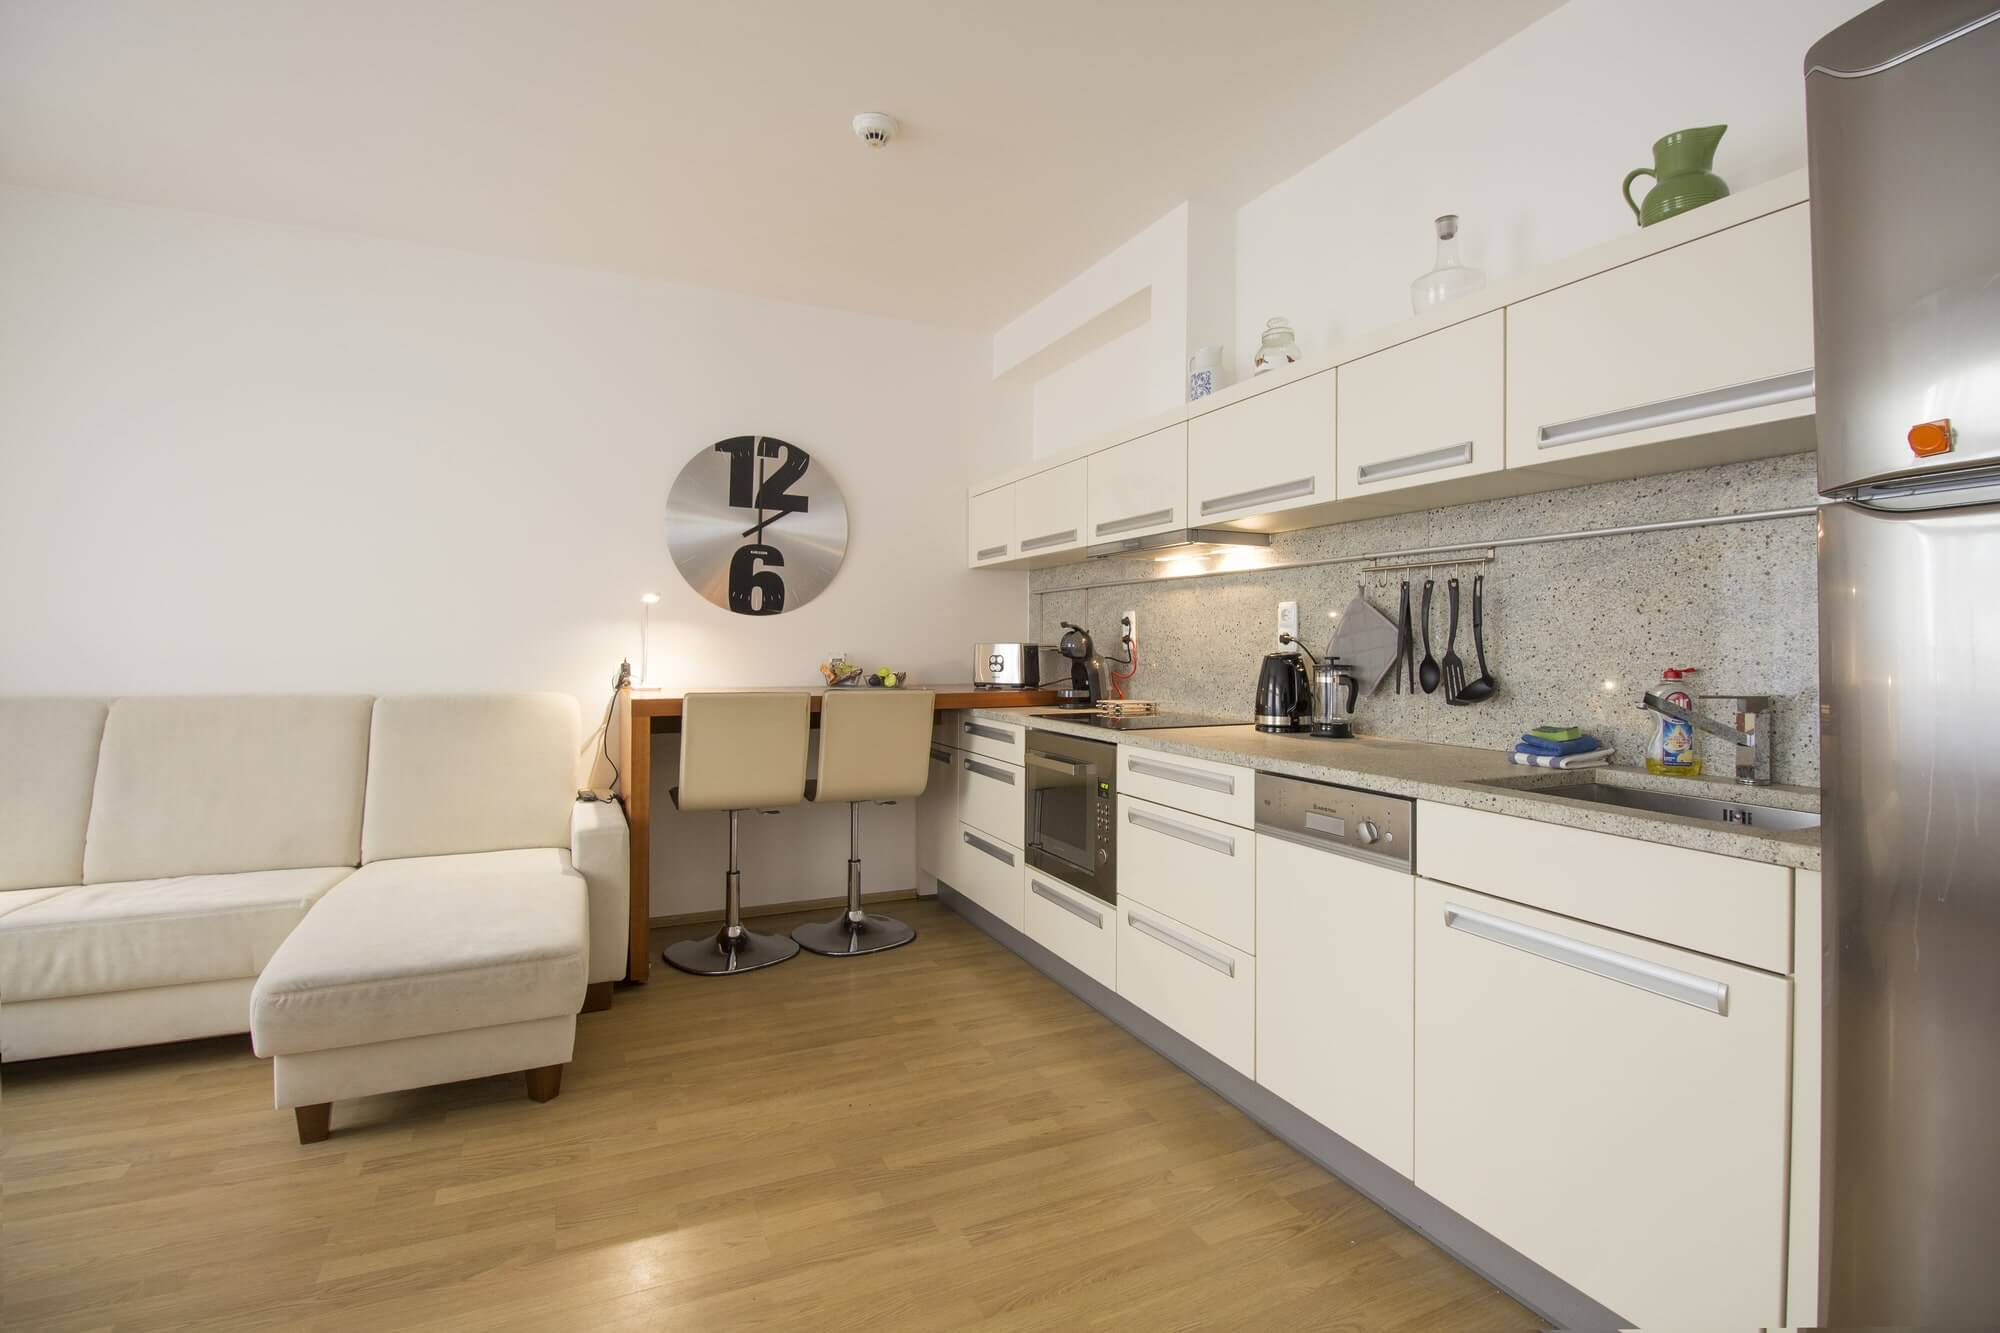 Apartment near Prague castle - fully equipped kitchen